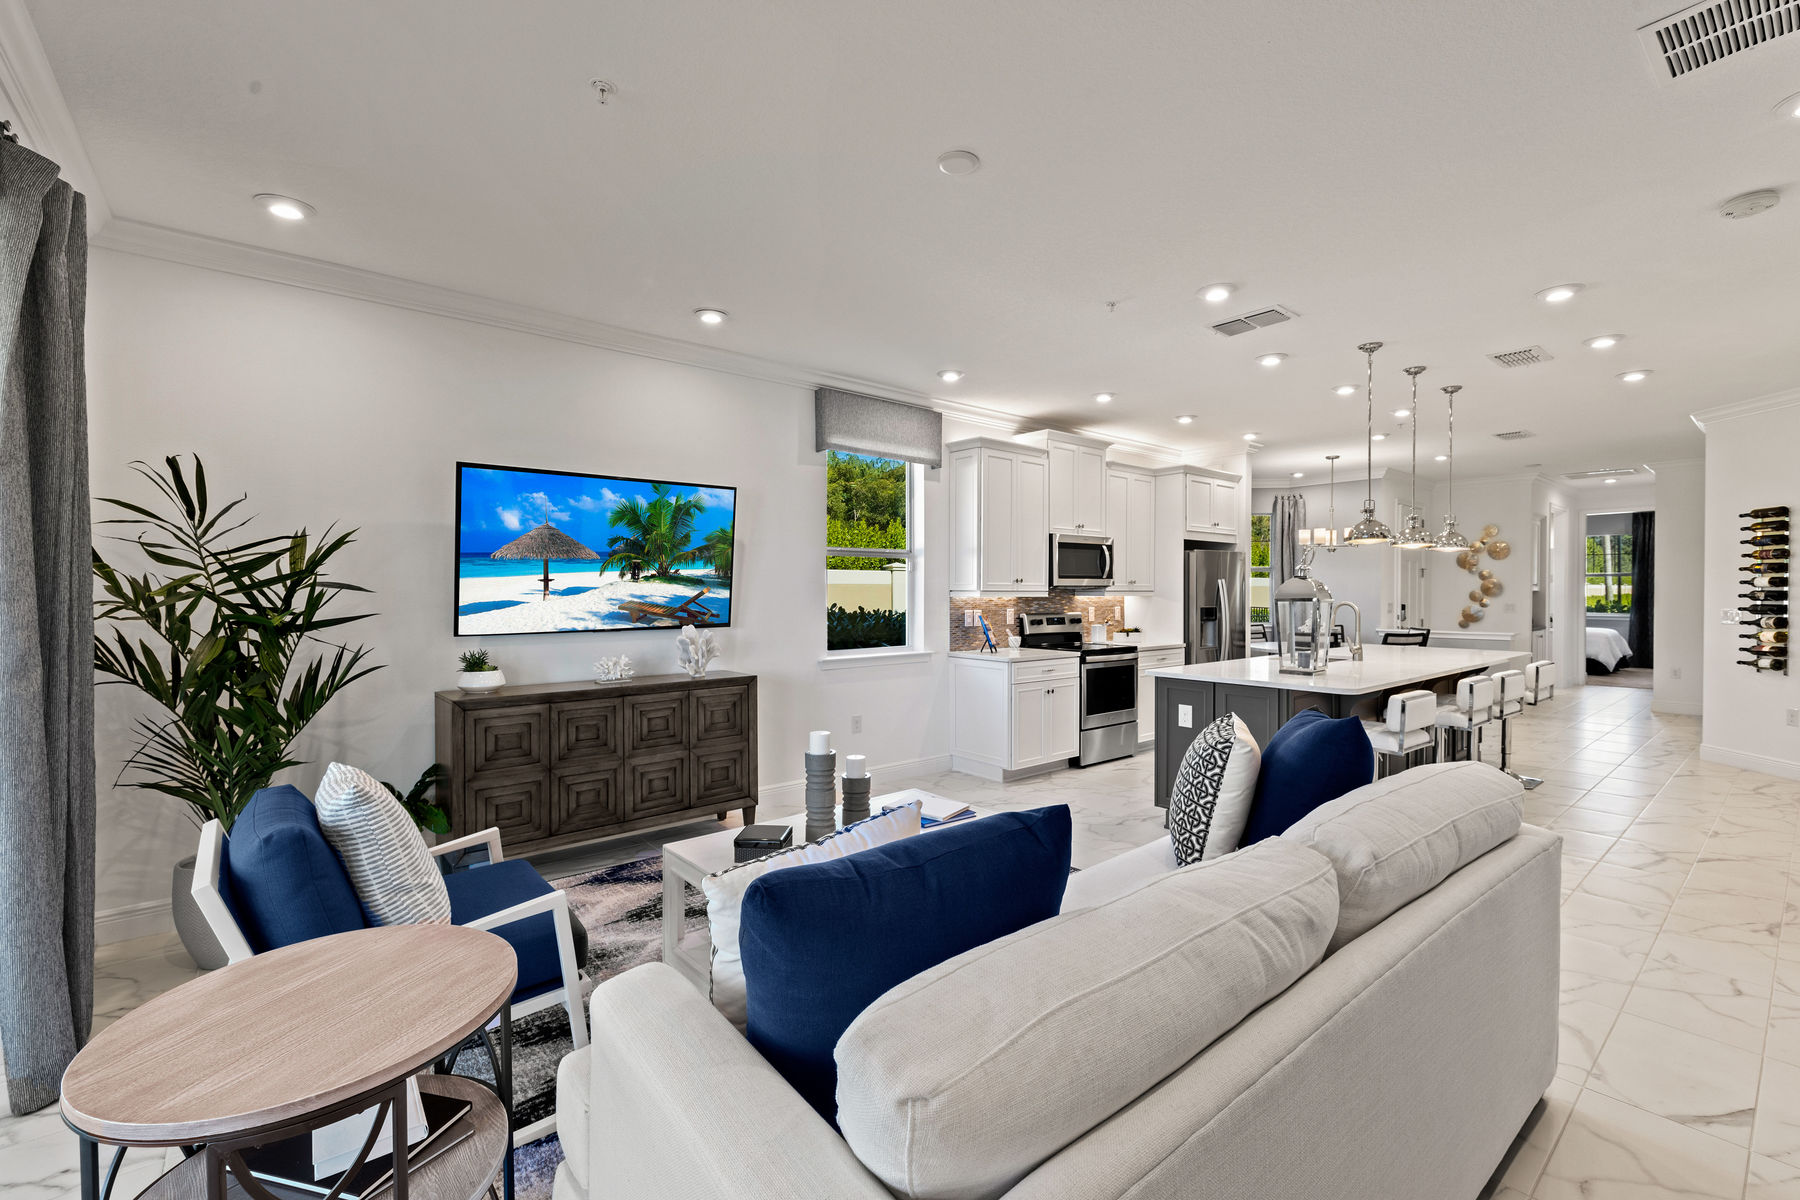 Captiva II Plan Greatroom at Arboretum in Naples Florida by Mattamy Homes